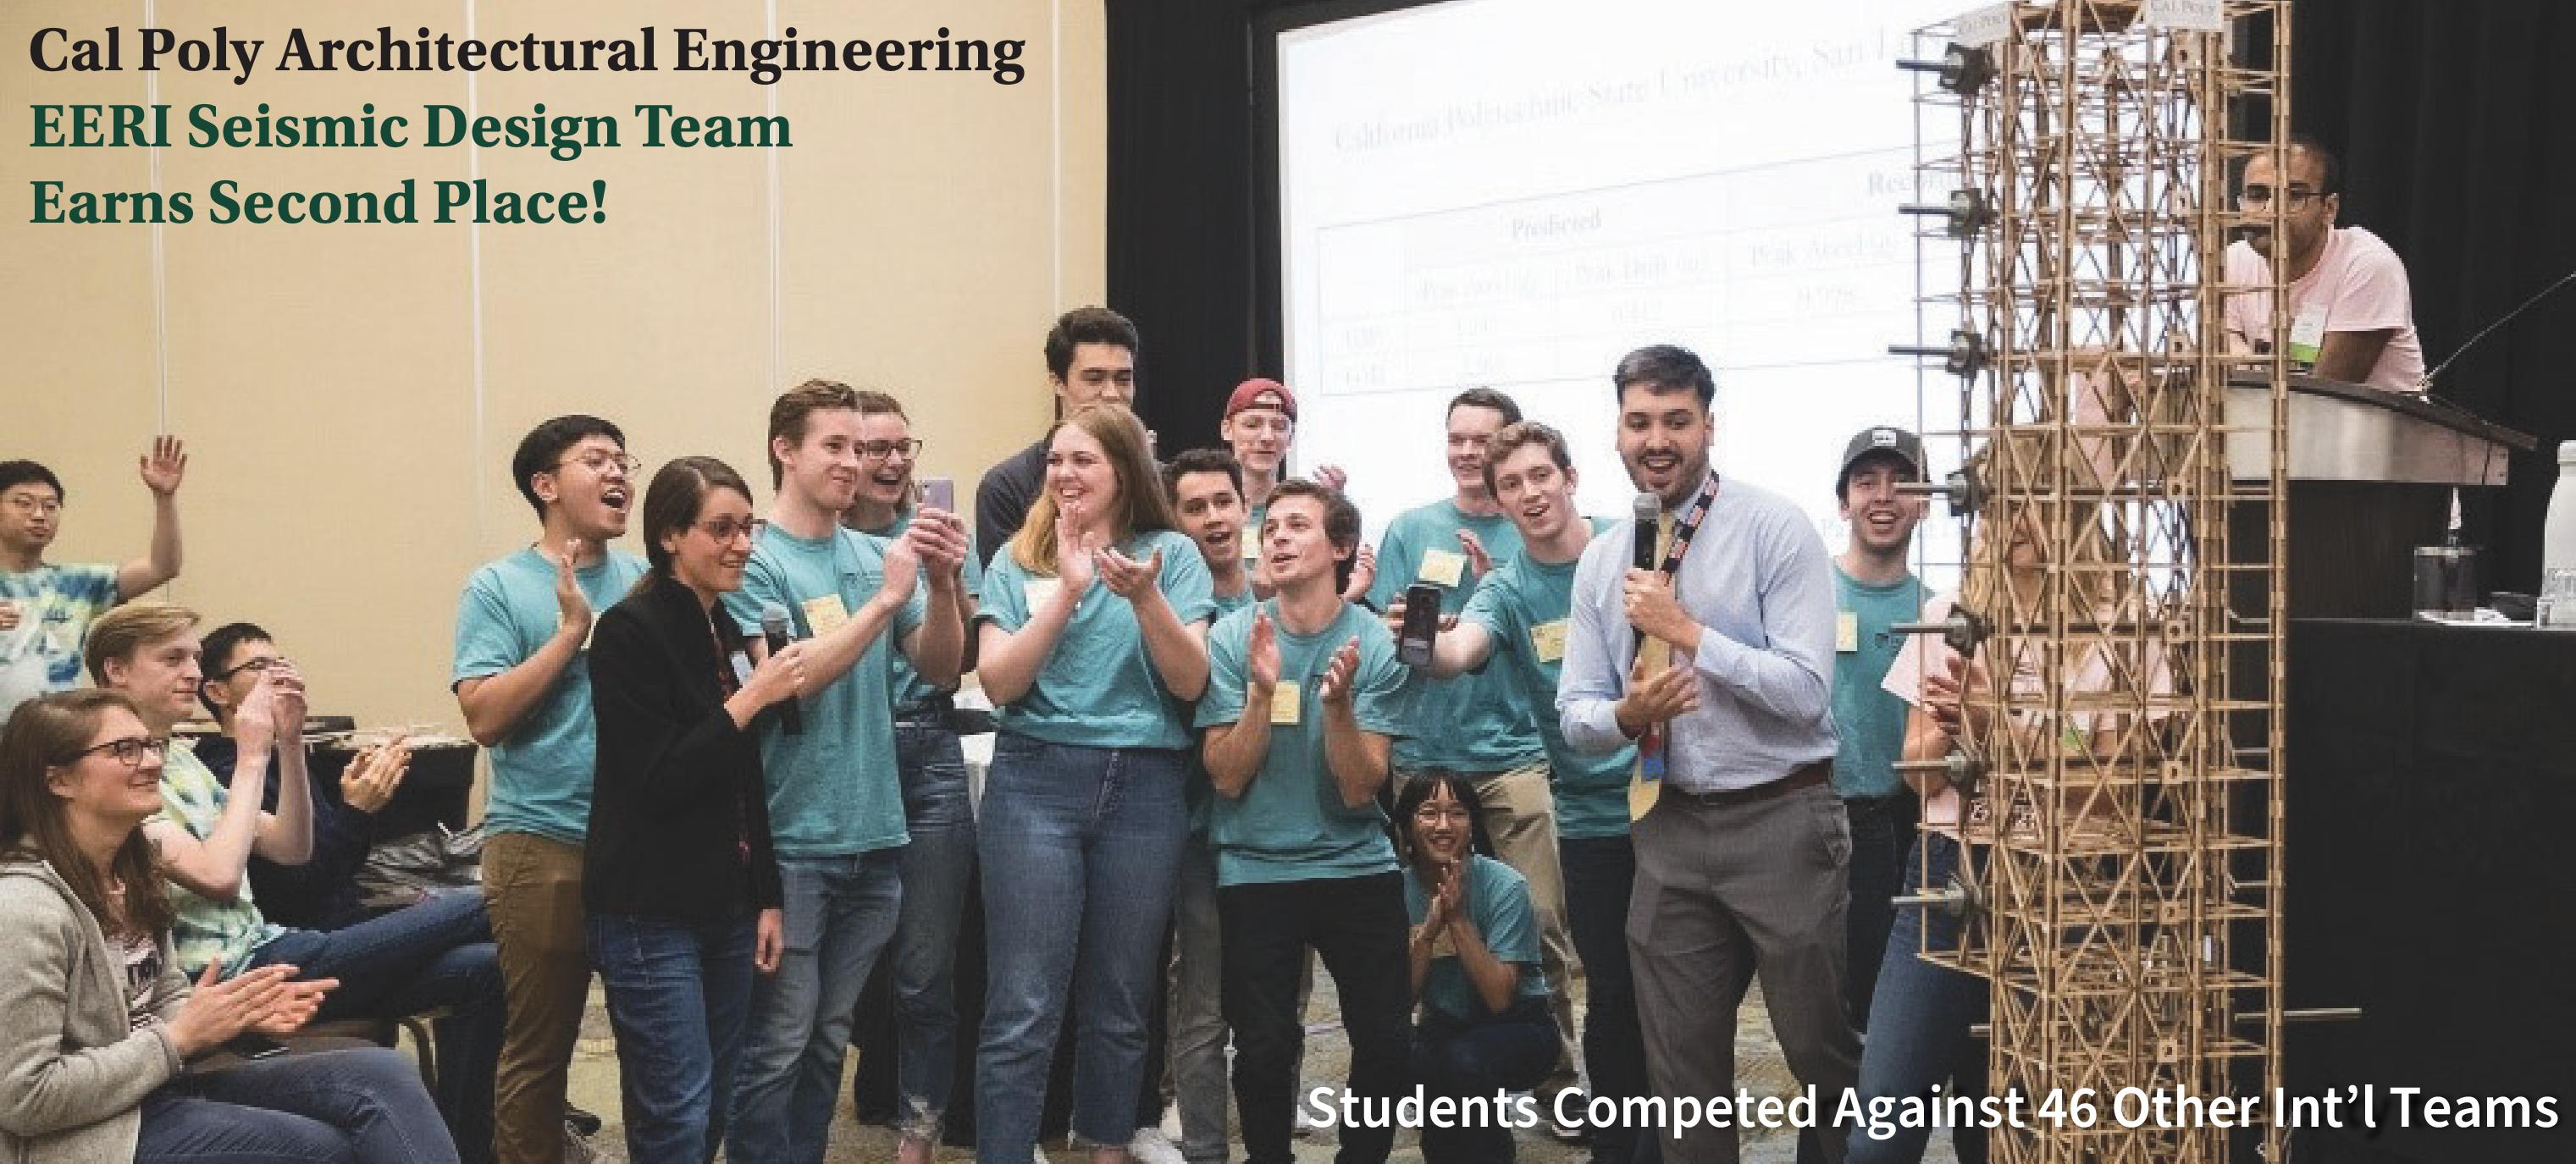 14 architectural engineering (ARCE) students placed second in the Earthquake Engineering Research Institute (EERI) Seismic Design Competition (SDC) in San Diego.